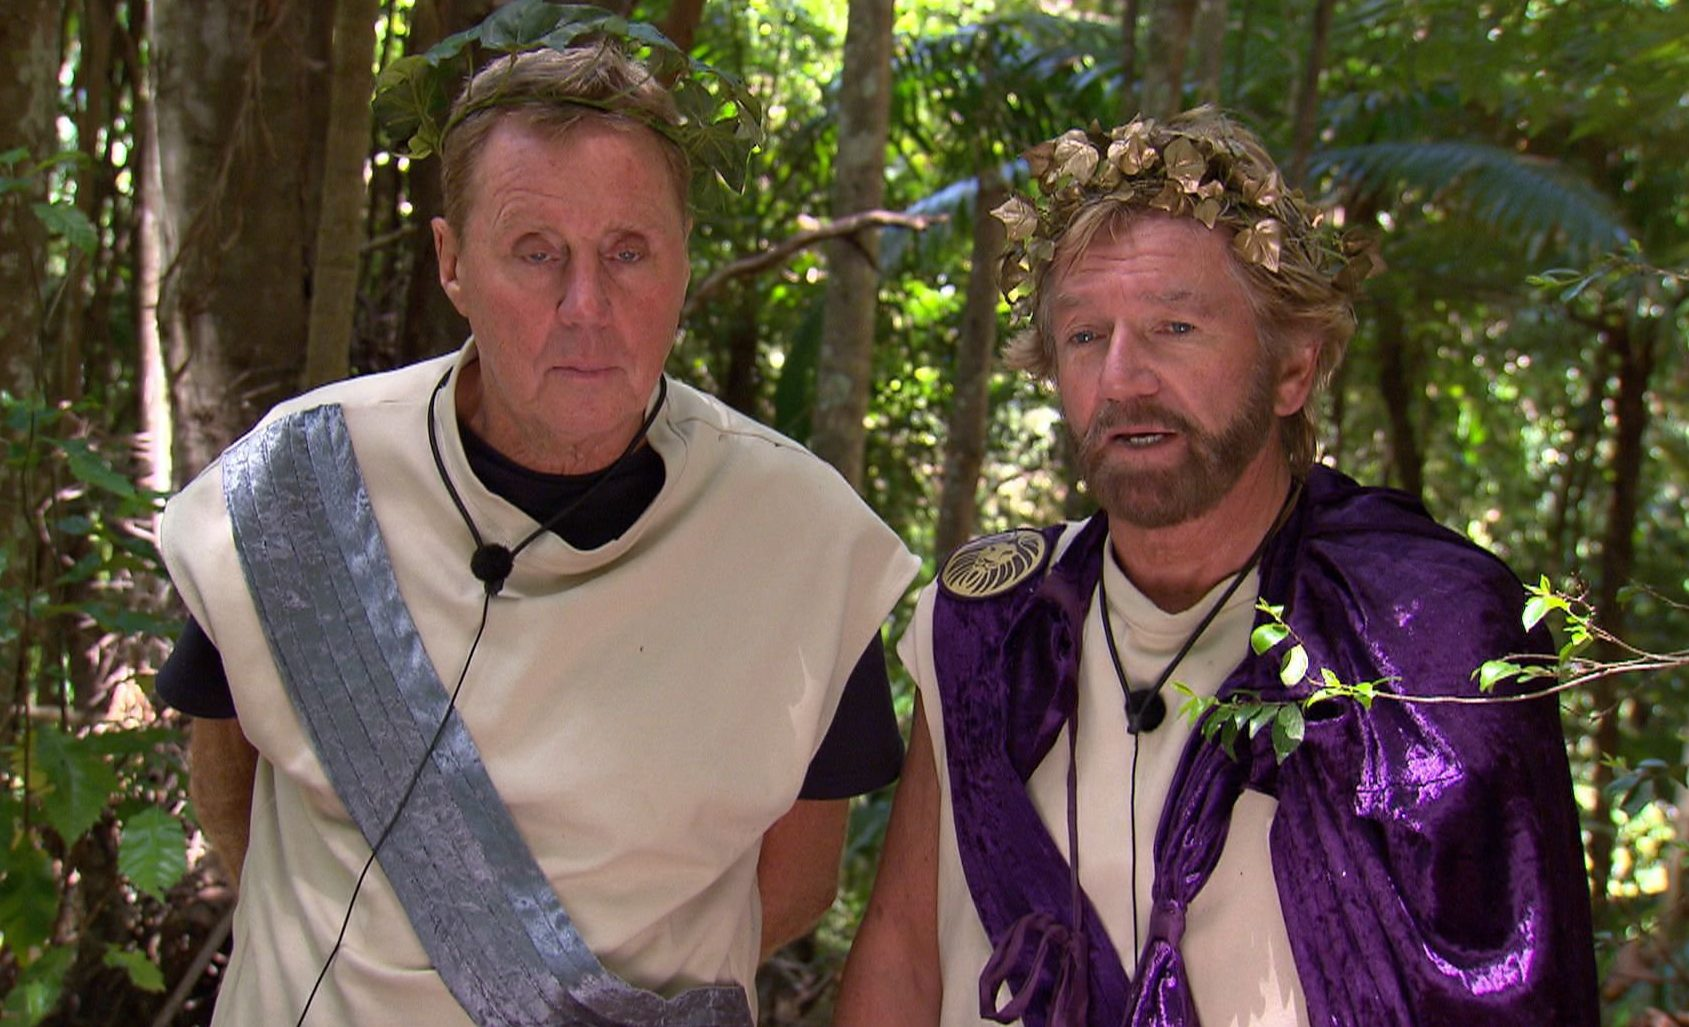 'Unhinged' Noel Edmonds hints at TV show with Harry Redknapp following I'm A Celebrity bromance